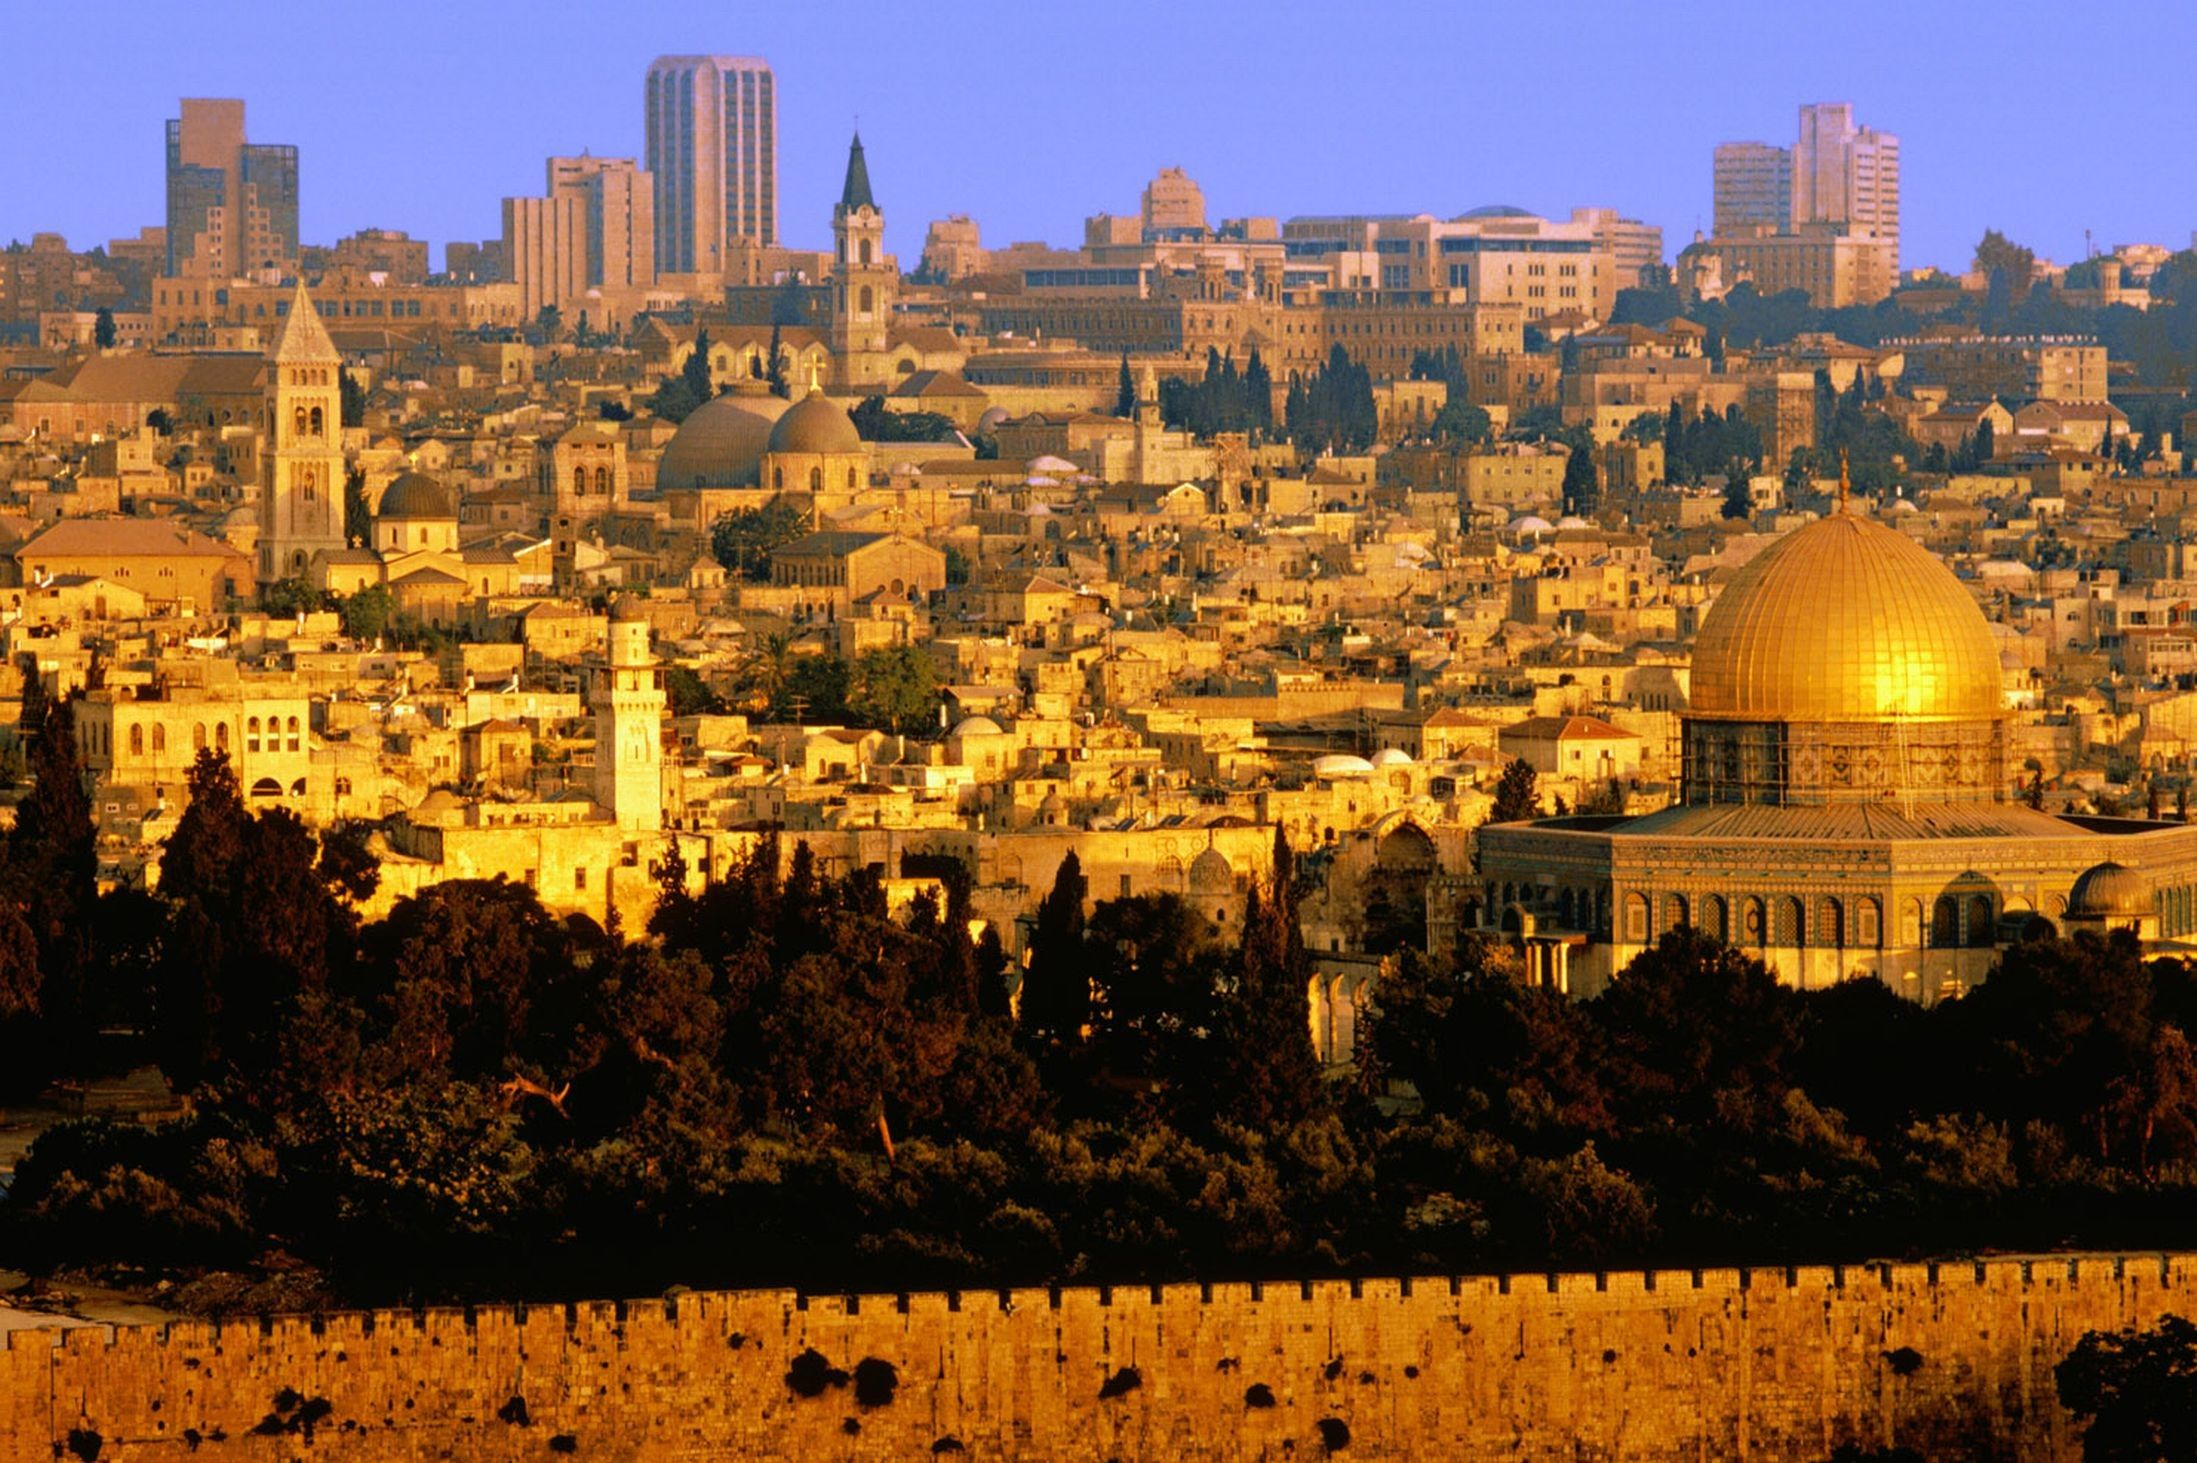 2197x1463 Jerusalem Wallpaper 20 - 2197 X 1463 | stmed.net